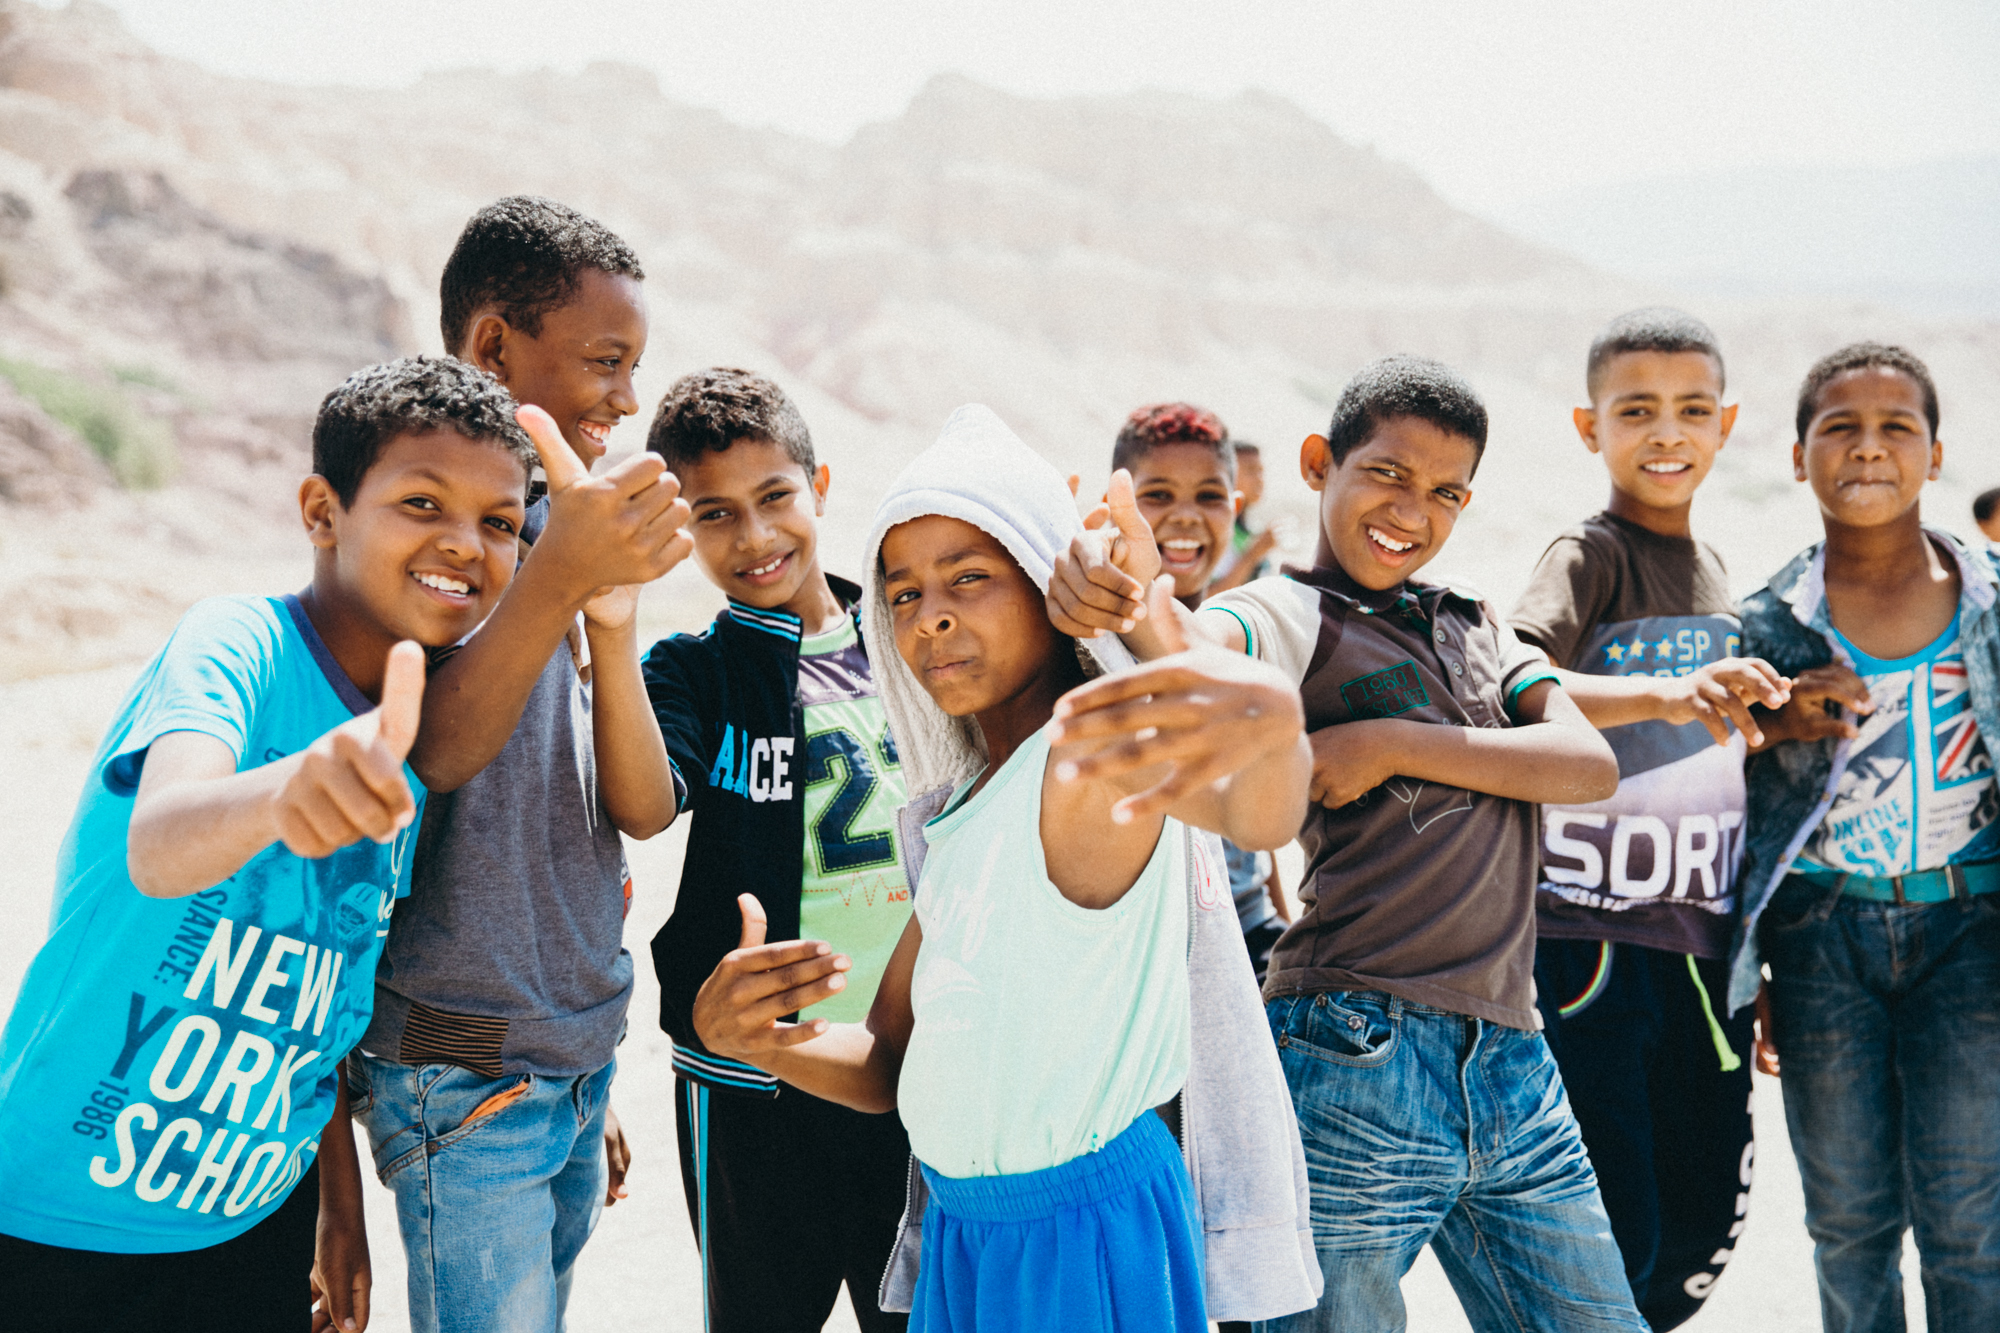 We started out day 1 hiking Wadi Al Hasa! A gorgeous canyon that runs perpendicular to the Dead Sea. Before we started hiking these kids came up and wanted to play.